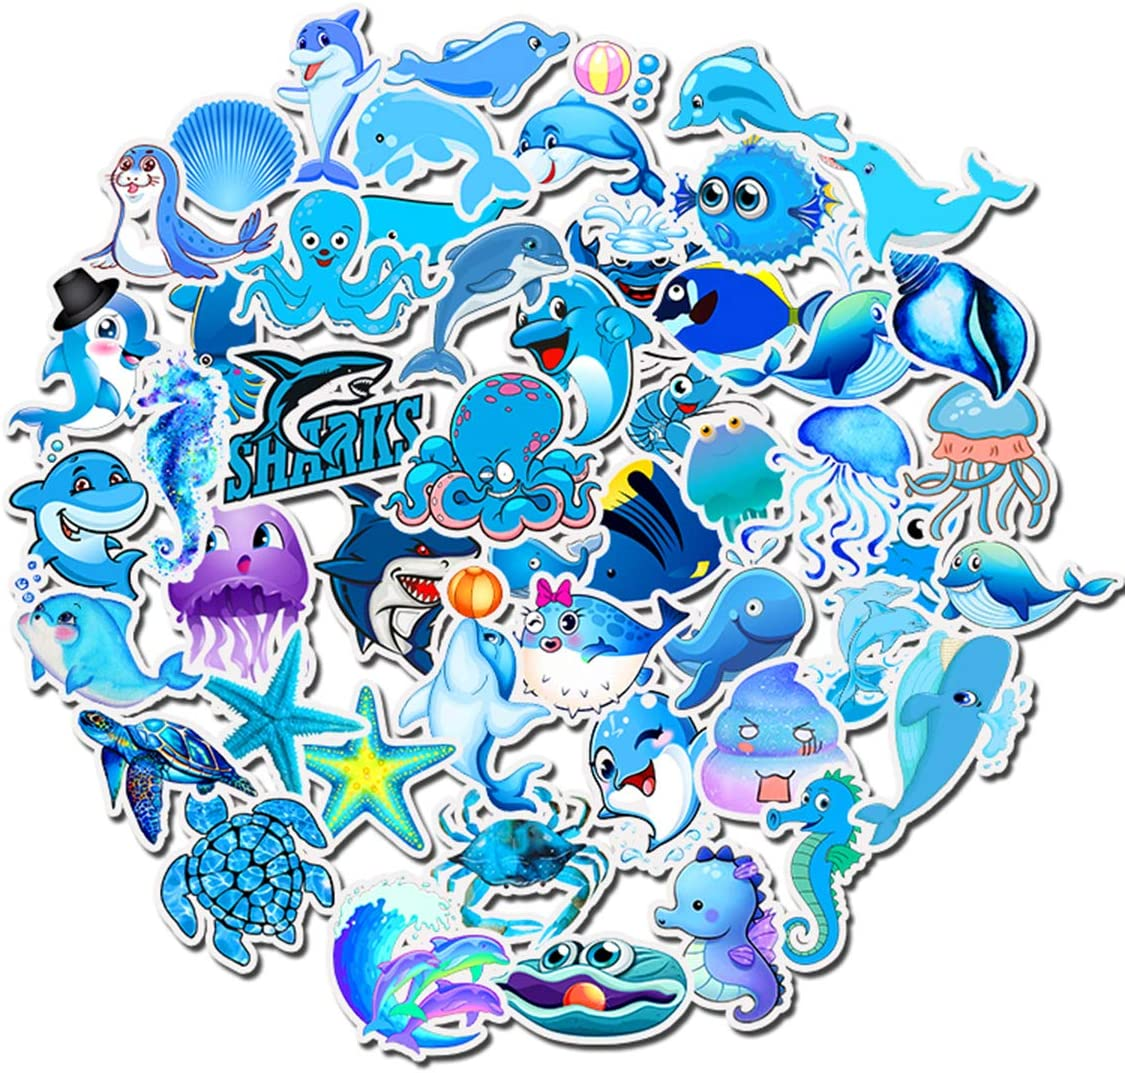 Sea World Animals Stickers Octopus Turtle Dolphin Shark Crab Laptop Stickers Waterproof Skateboard Snowboard Car Bicycle Luggage Decal 49pcs Pack (Sea World Animals)